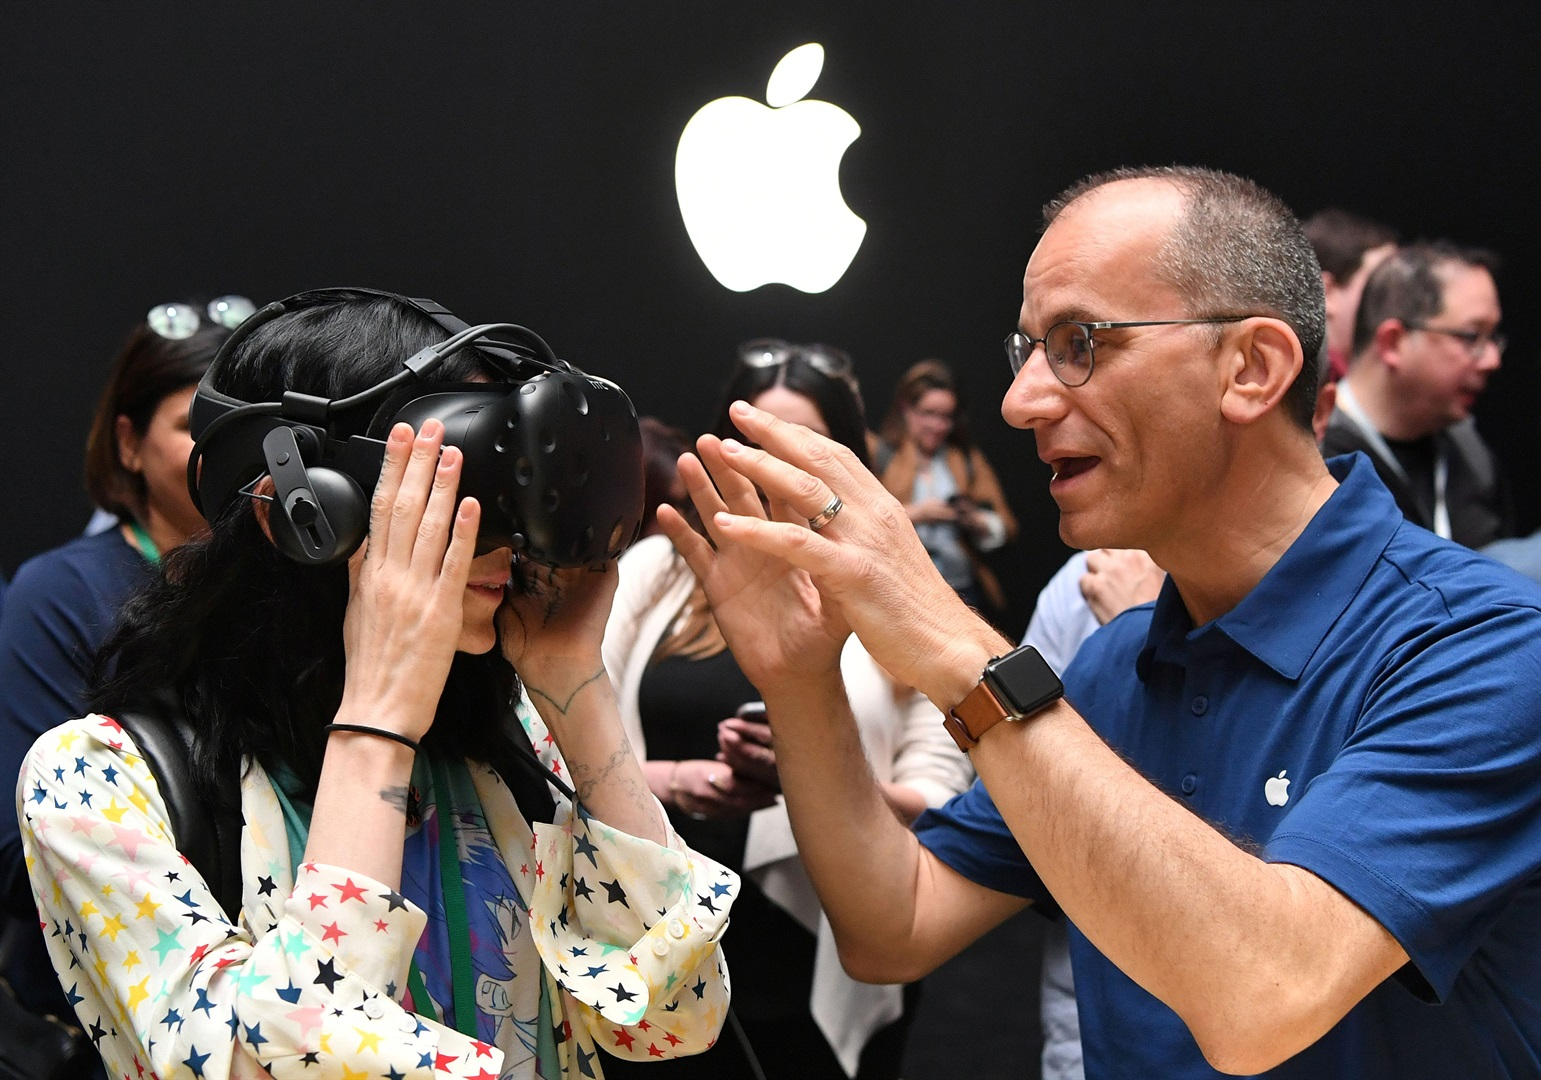 Apple acquires virtual reality tech startup